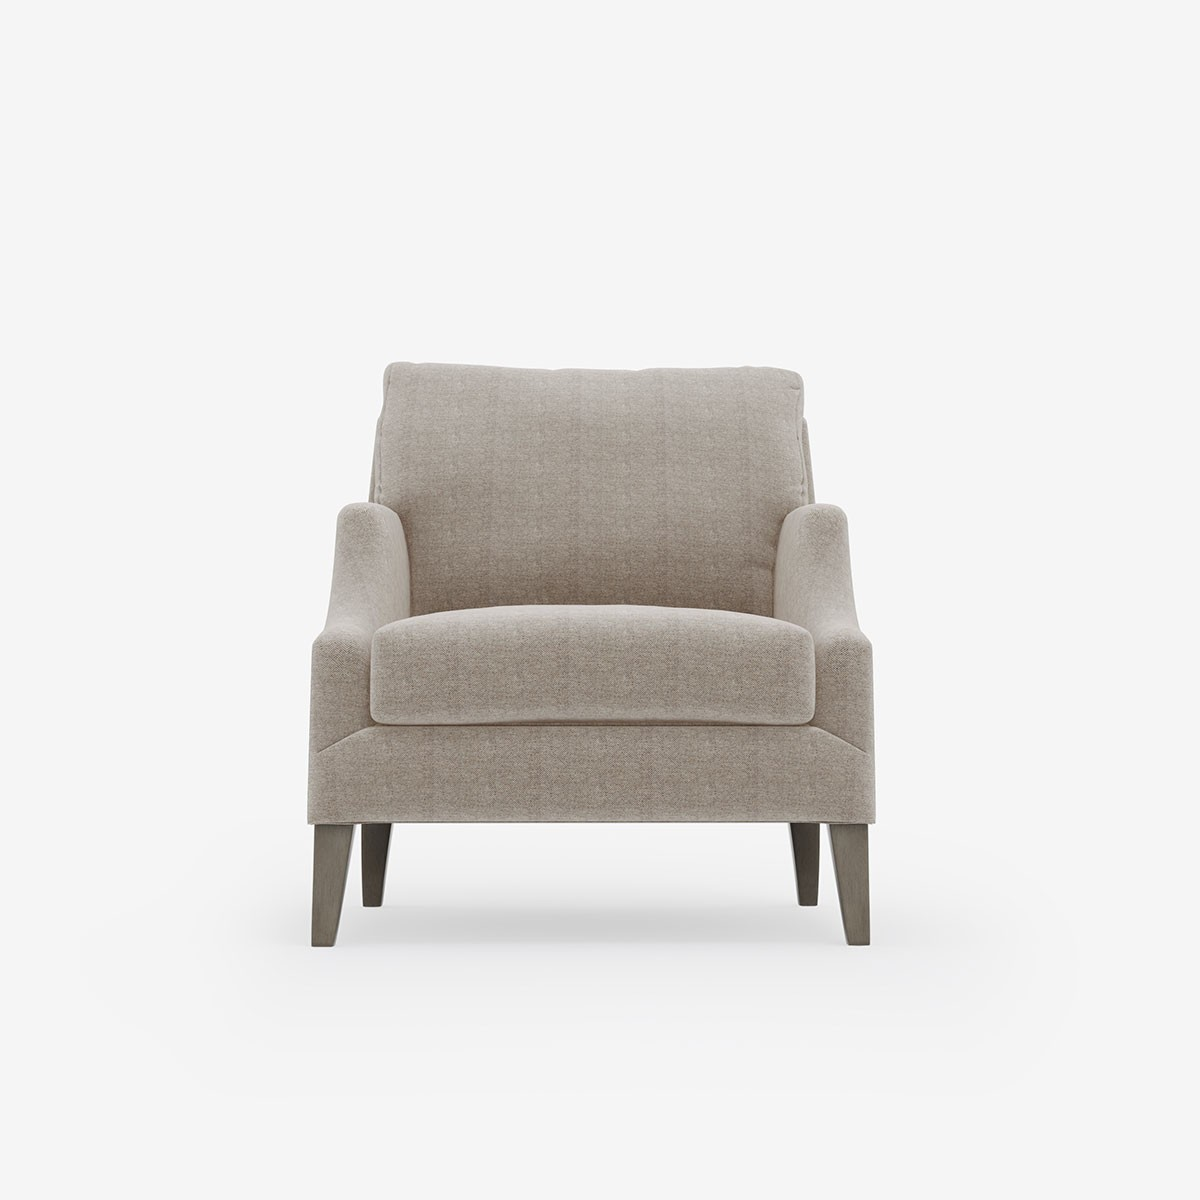 Image shows Dan's Comfy Chair in Relaxed Herringbone Soft Stone